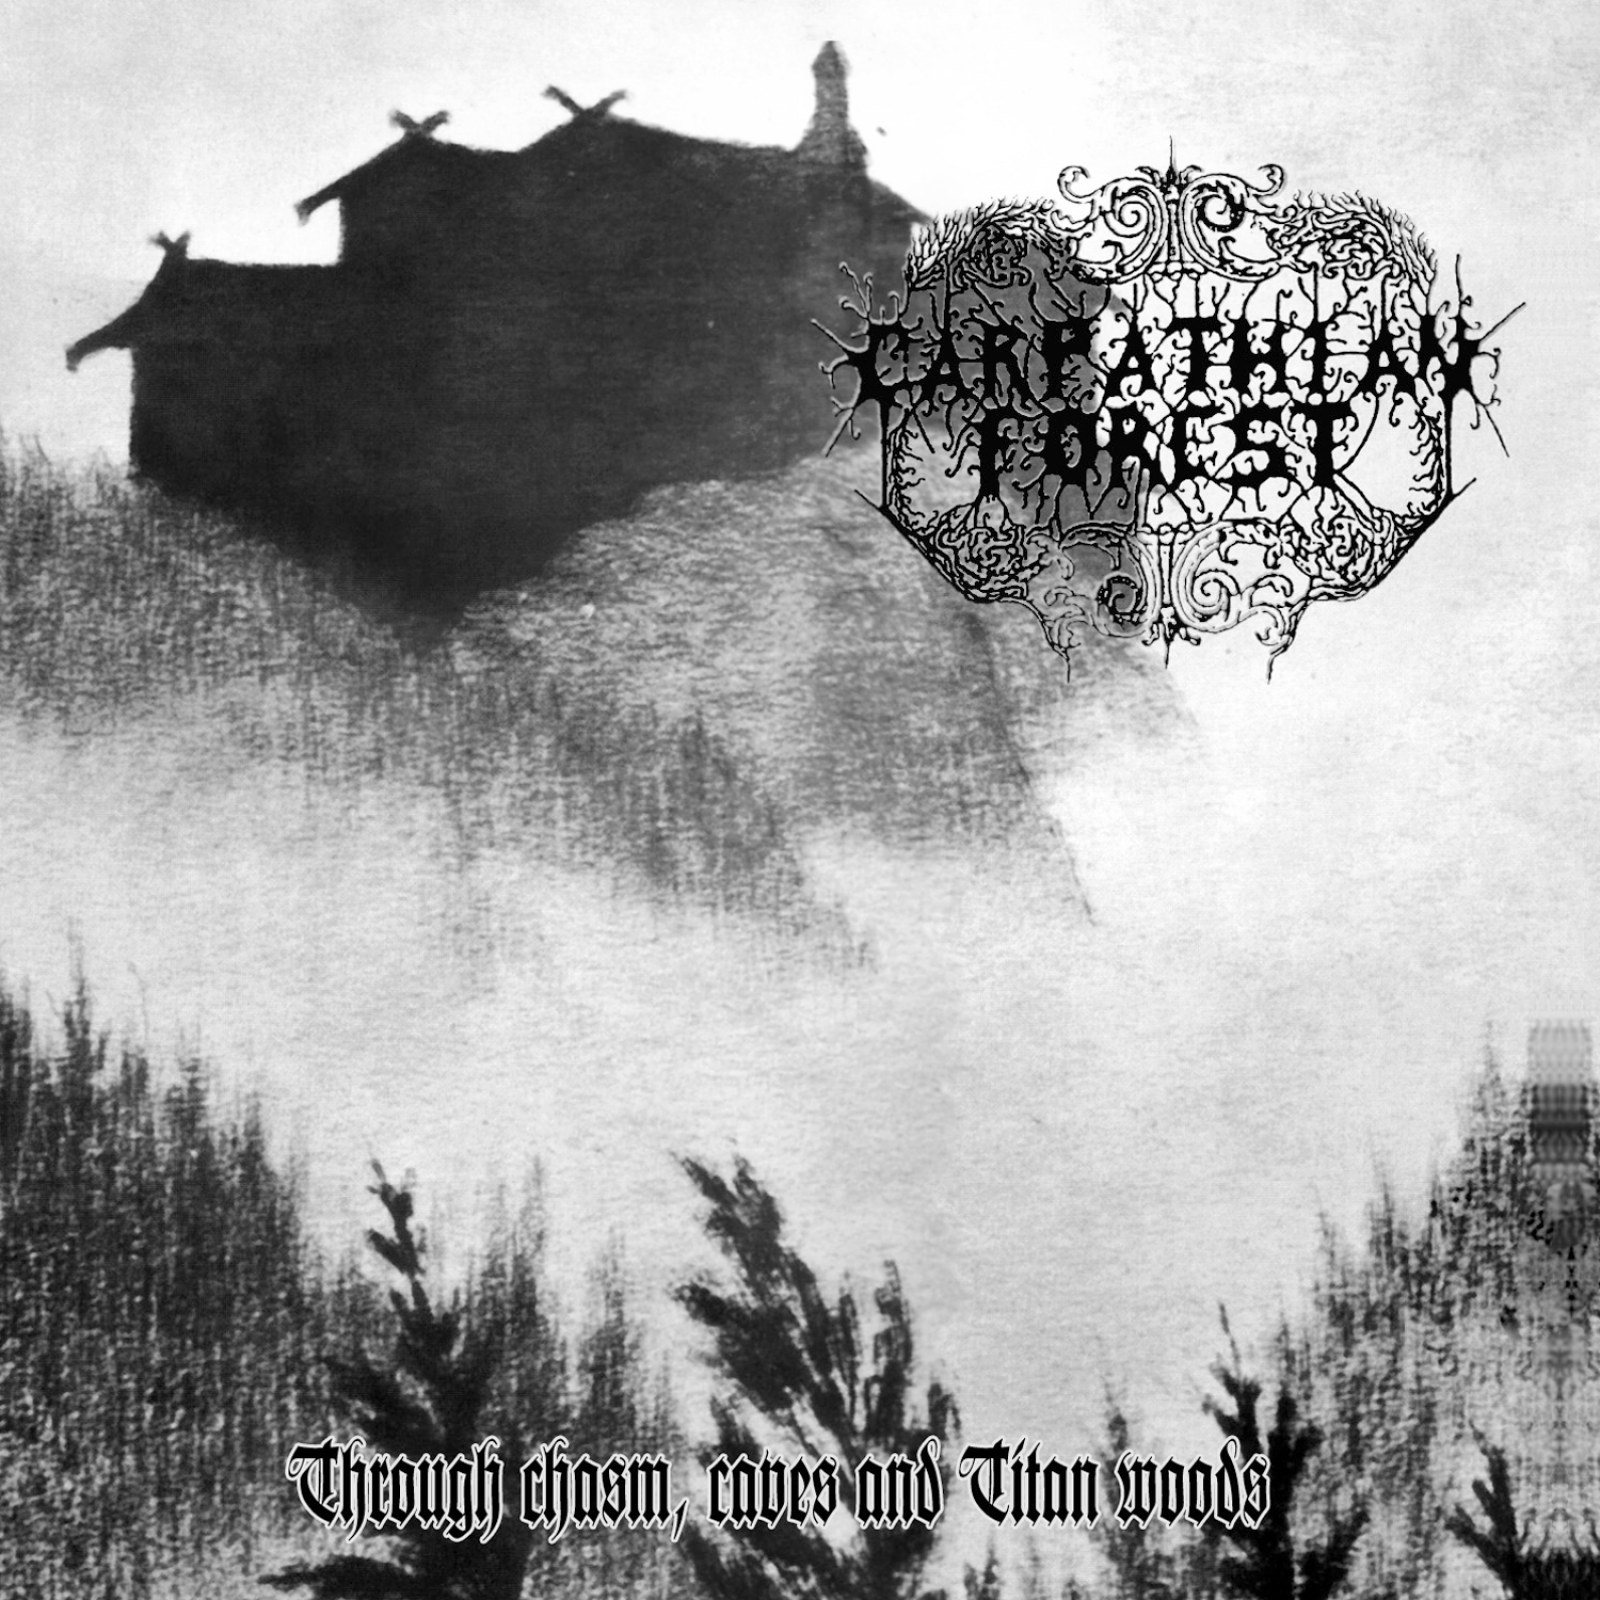 Review for Carpathian Forest - Through Chasm, Caves and Titan Woods